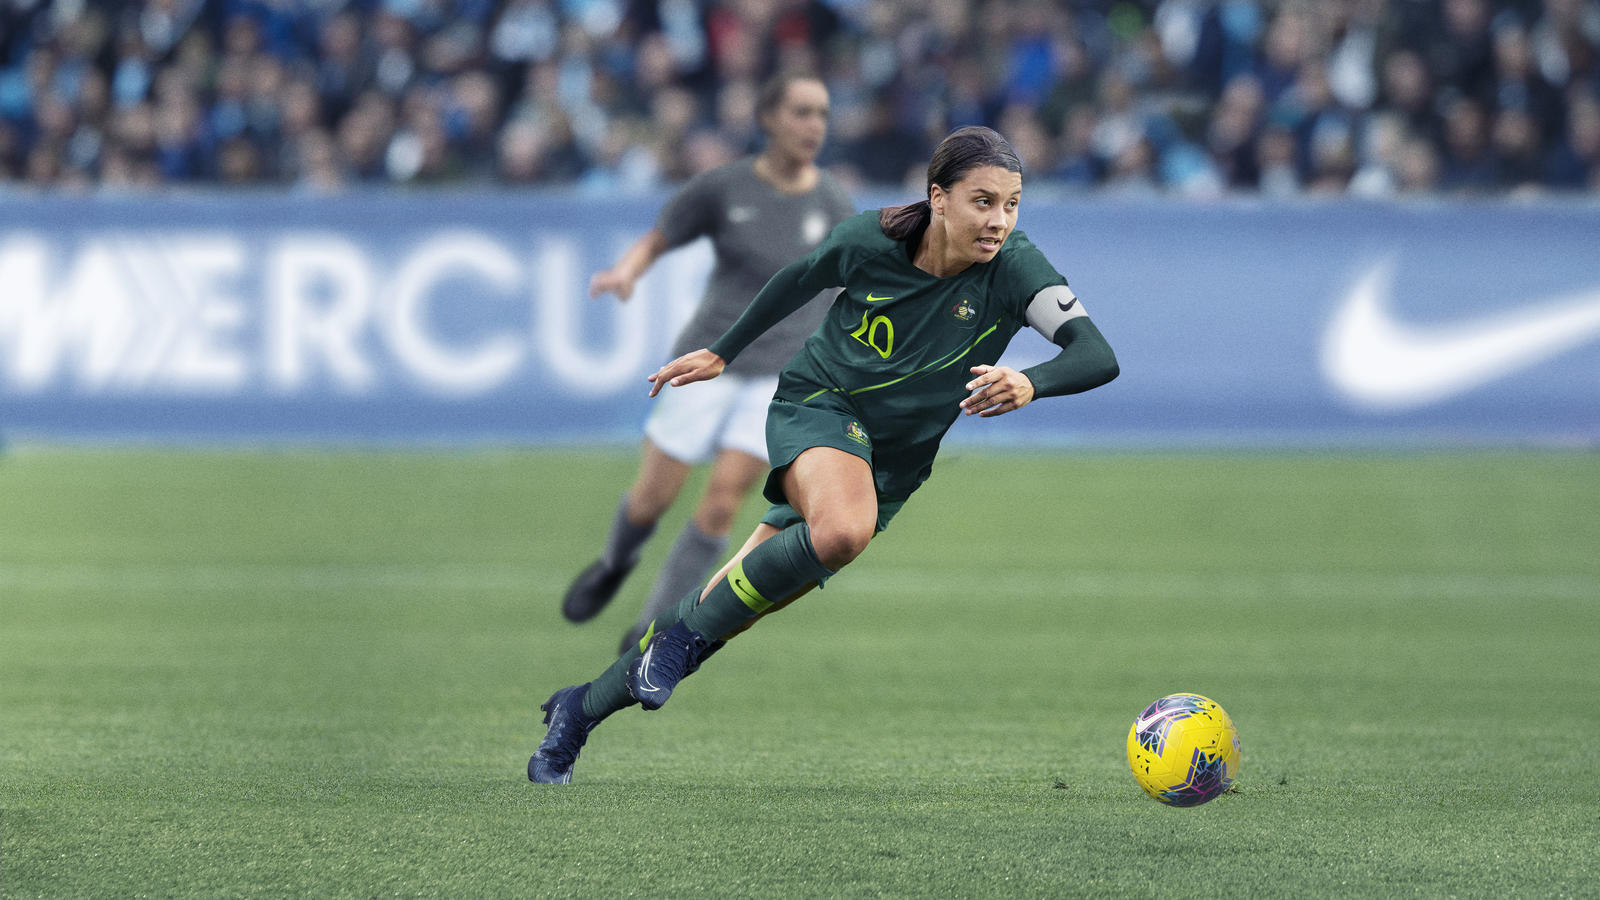 Ho19 Gfb Dream Speed Athlete Image Sam Kerr Digital Action2